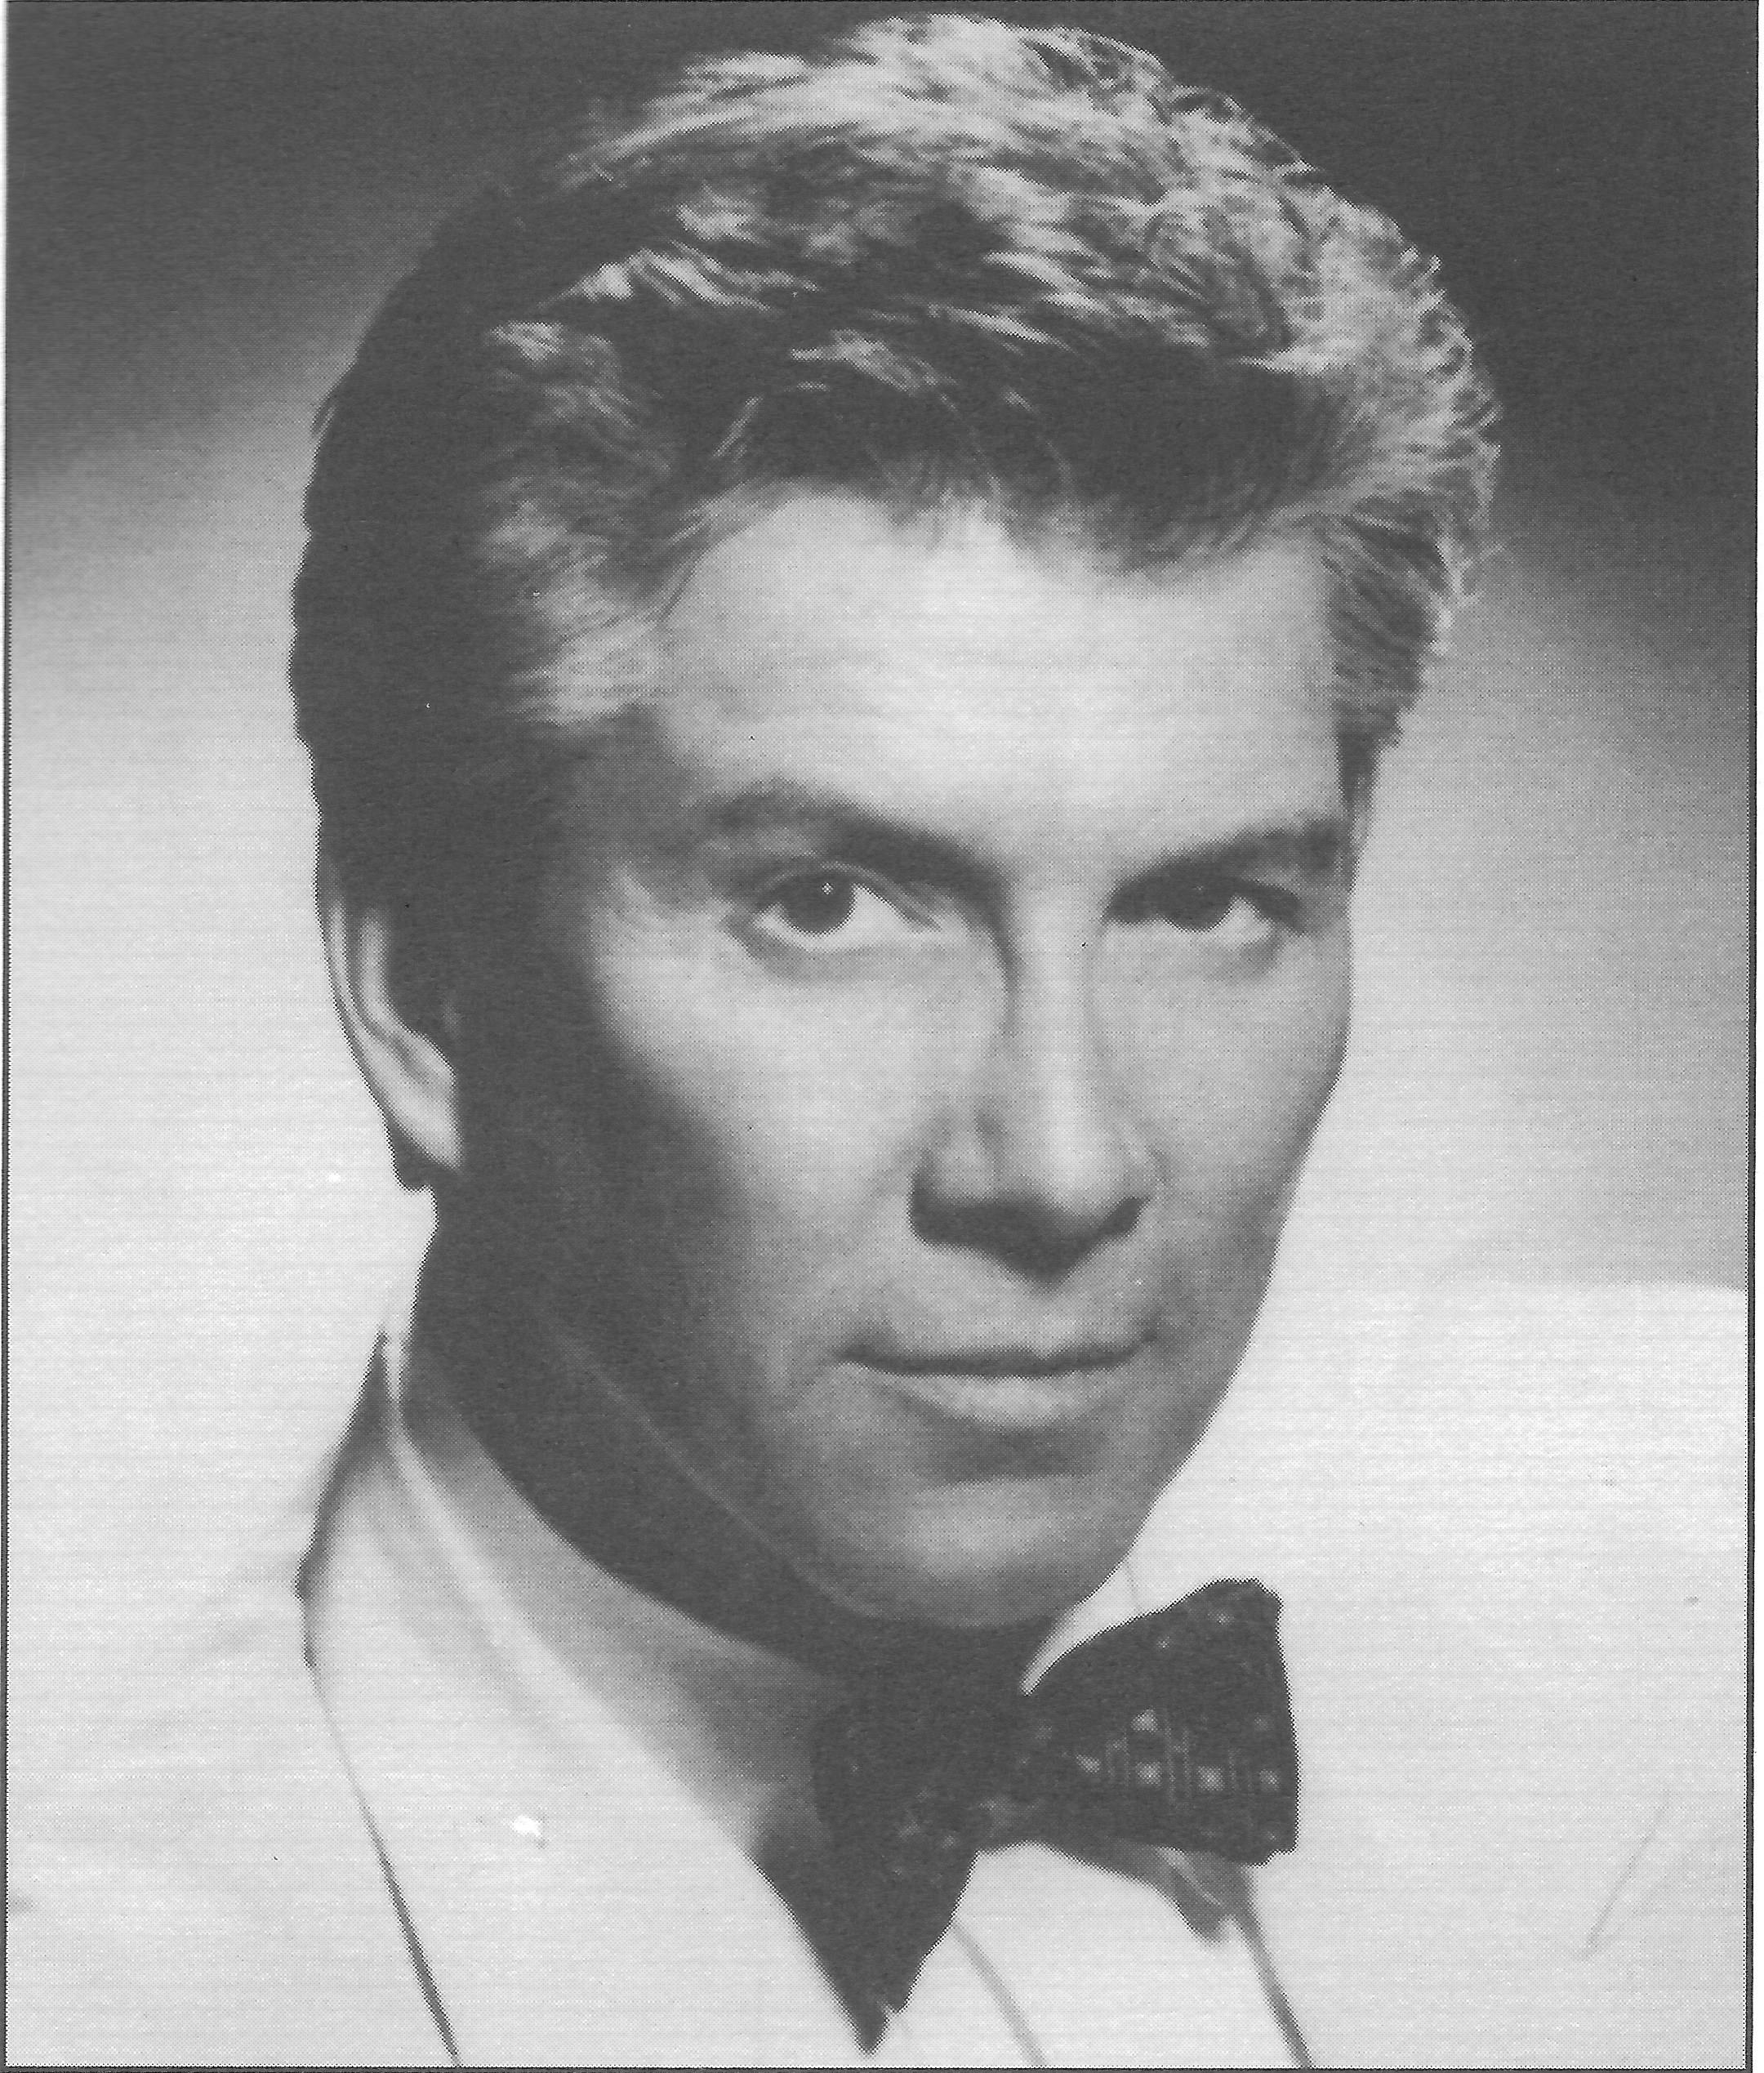 michael buffer donald trumpmichael buffer twitter, michael buffer south park, michael buffer money, michael buffer wiki, michael buffer best introduction, michael buffer ufc, michael buffer it's time, michael buffer oscar de la hoya, michael buffer speech, michael buffer donald trump, michael buffer are you ready, michael buffer height, michael buffer net worth, michael buffer bruce buffer, michael buffer mp3, michael buffer text to speech, michael buffer instagram, michael buffer salary, michael buffer muhammad ali, michael buffer kimdir